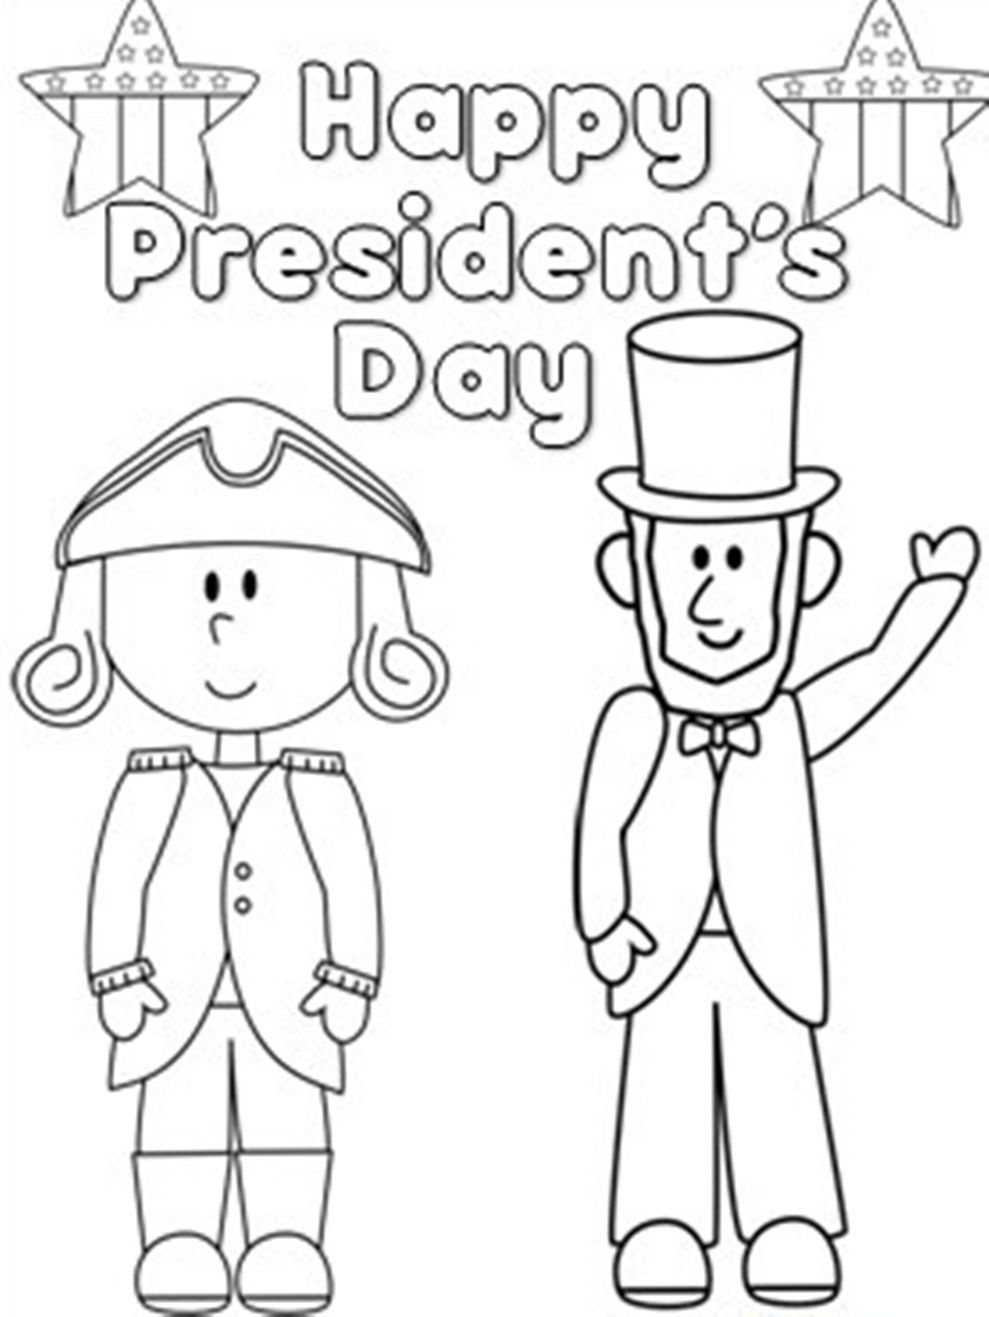 worksheet Free Presidents Day Worksheets 1000 images about presidents day on pinterest thomas jefferson videos and happy day